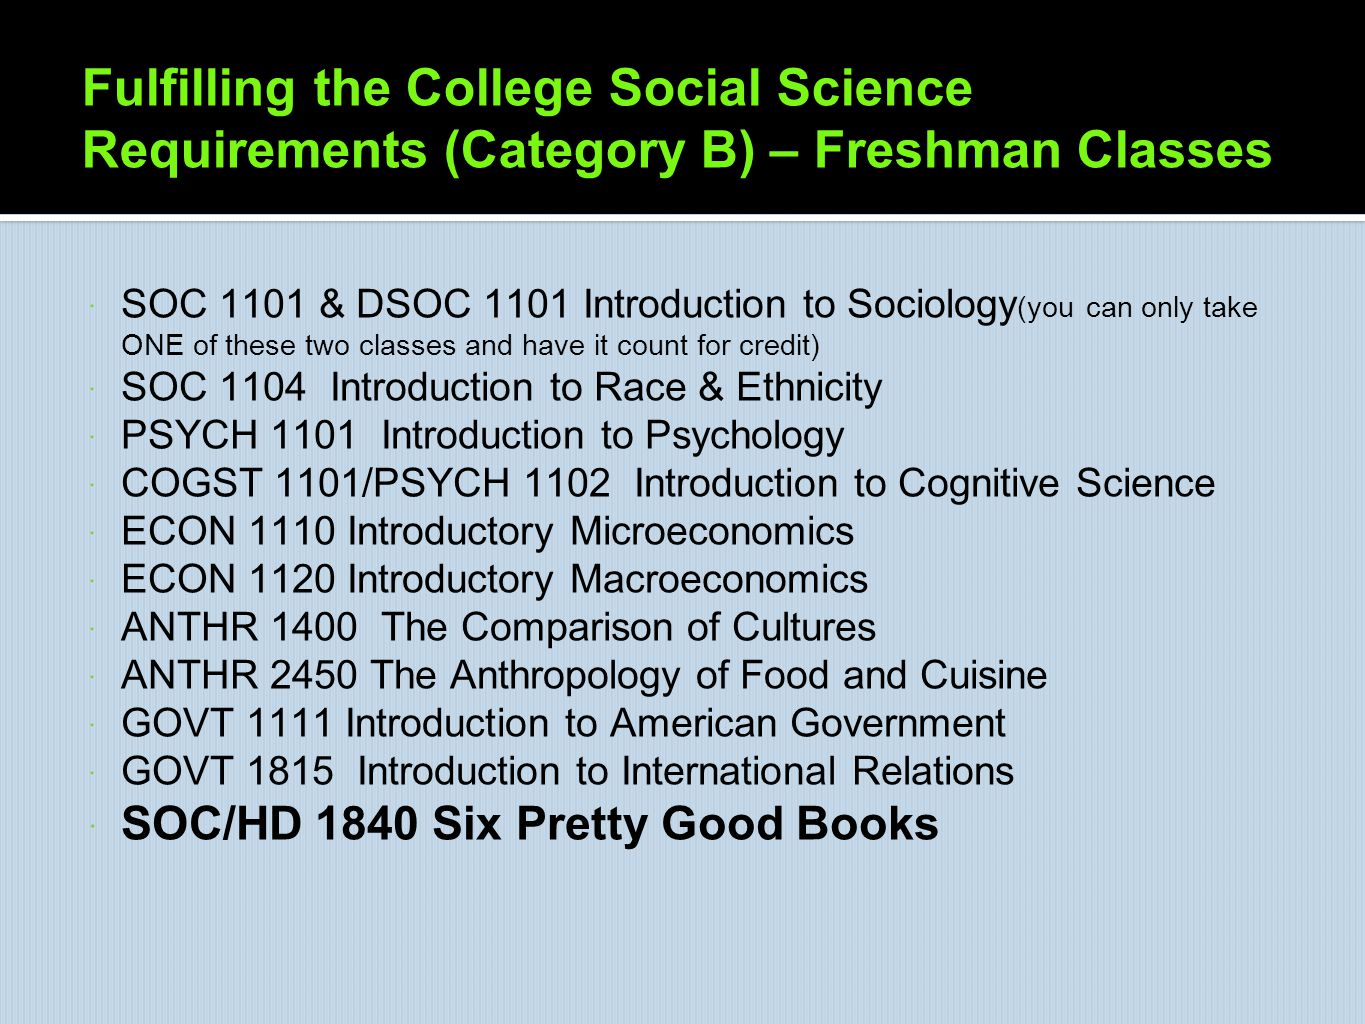 Fulfilling the College Social Science Requirements (Category B) – Freshman Classes